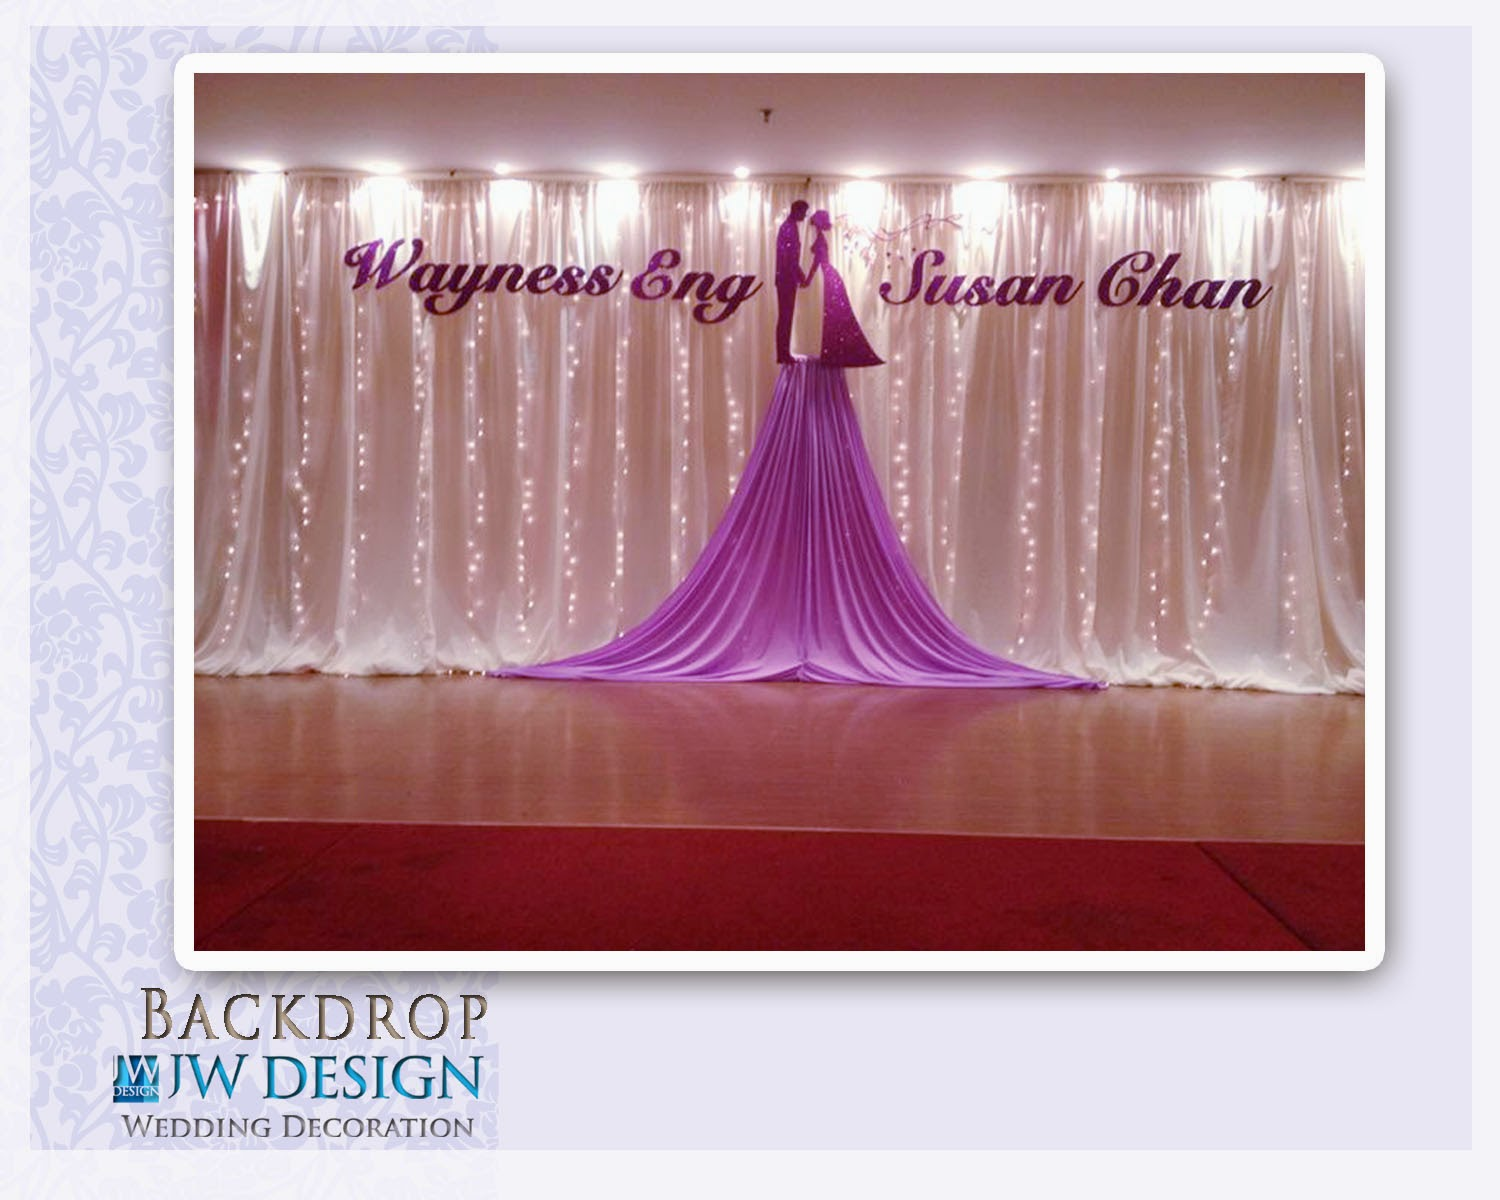 Jw design wedding decoration wayness susans wedding at klang wedding decoration in klang executive club selagor malaysia junglespirit Gallery